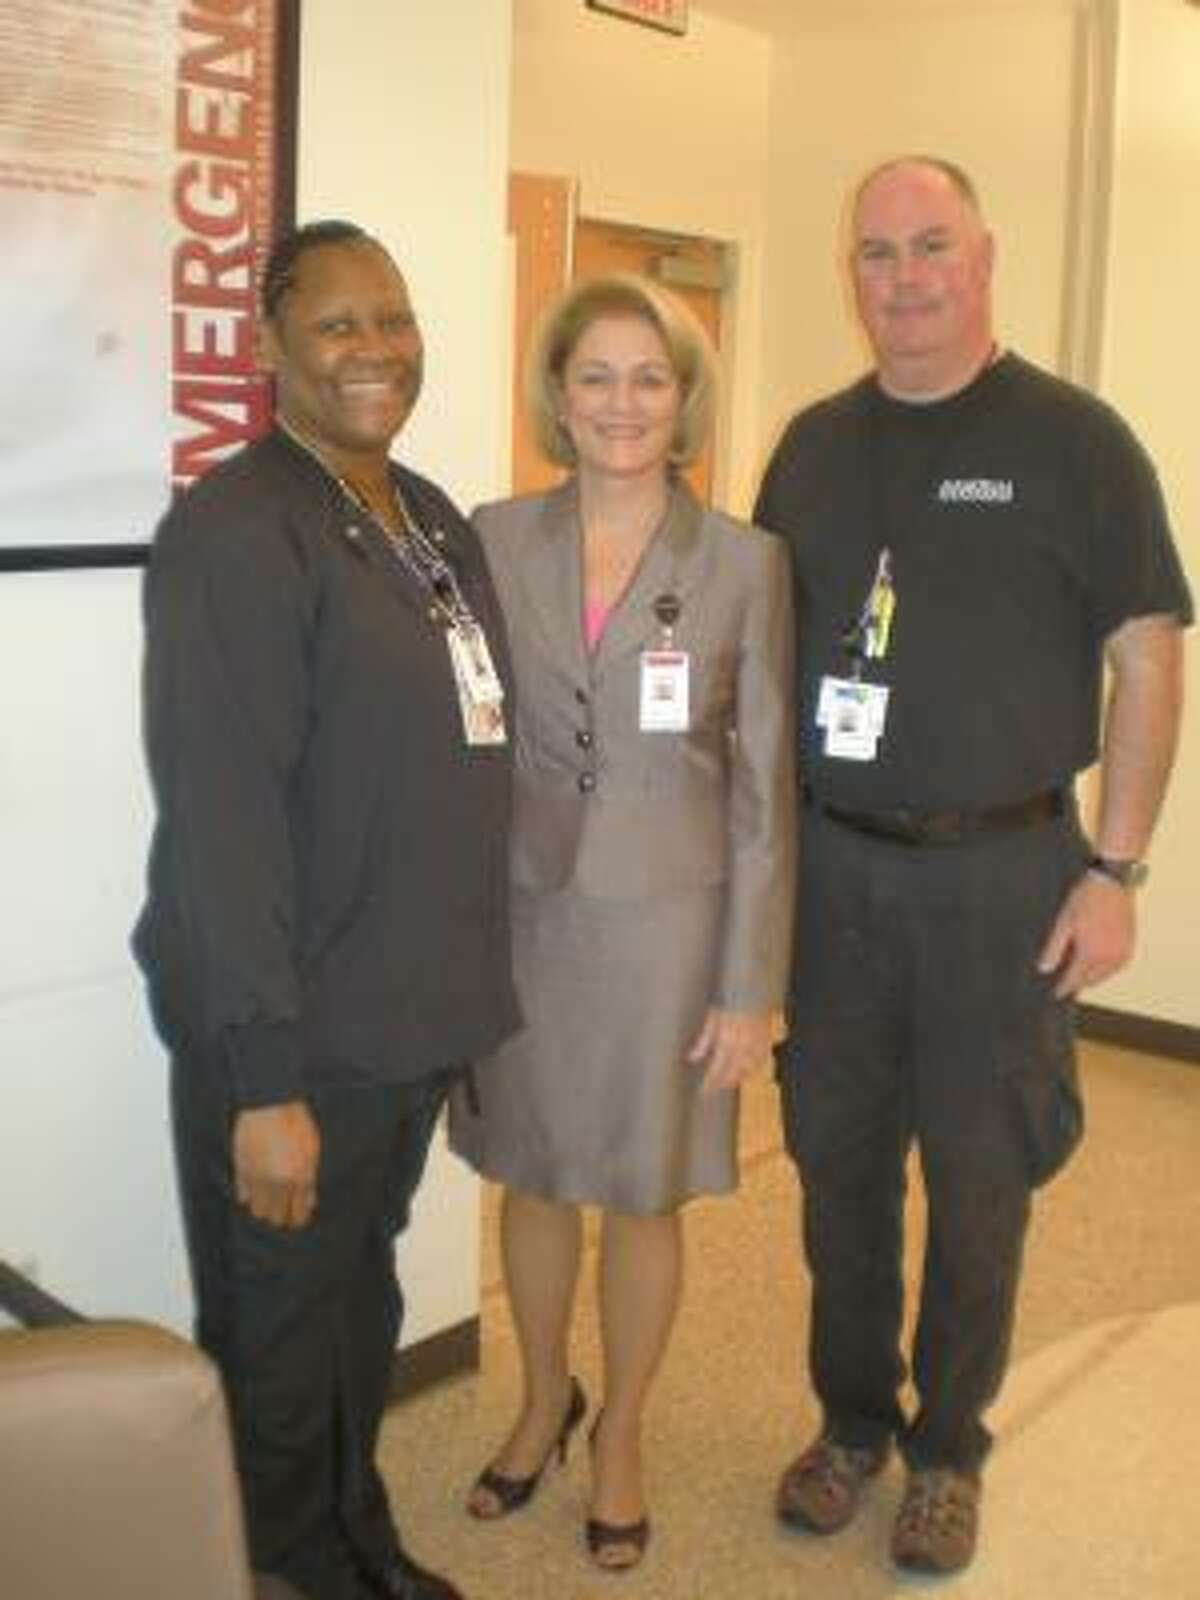 THE NEW BOSS: Carolyn Galloway, center, is the new Emergency Center Medical Director at Northeast Hospital. She is shown here with two Emergency Center employees, Alvin Perry, left, and Keith Bailey.